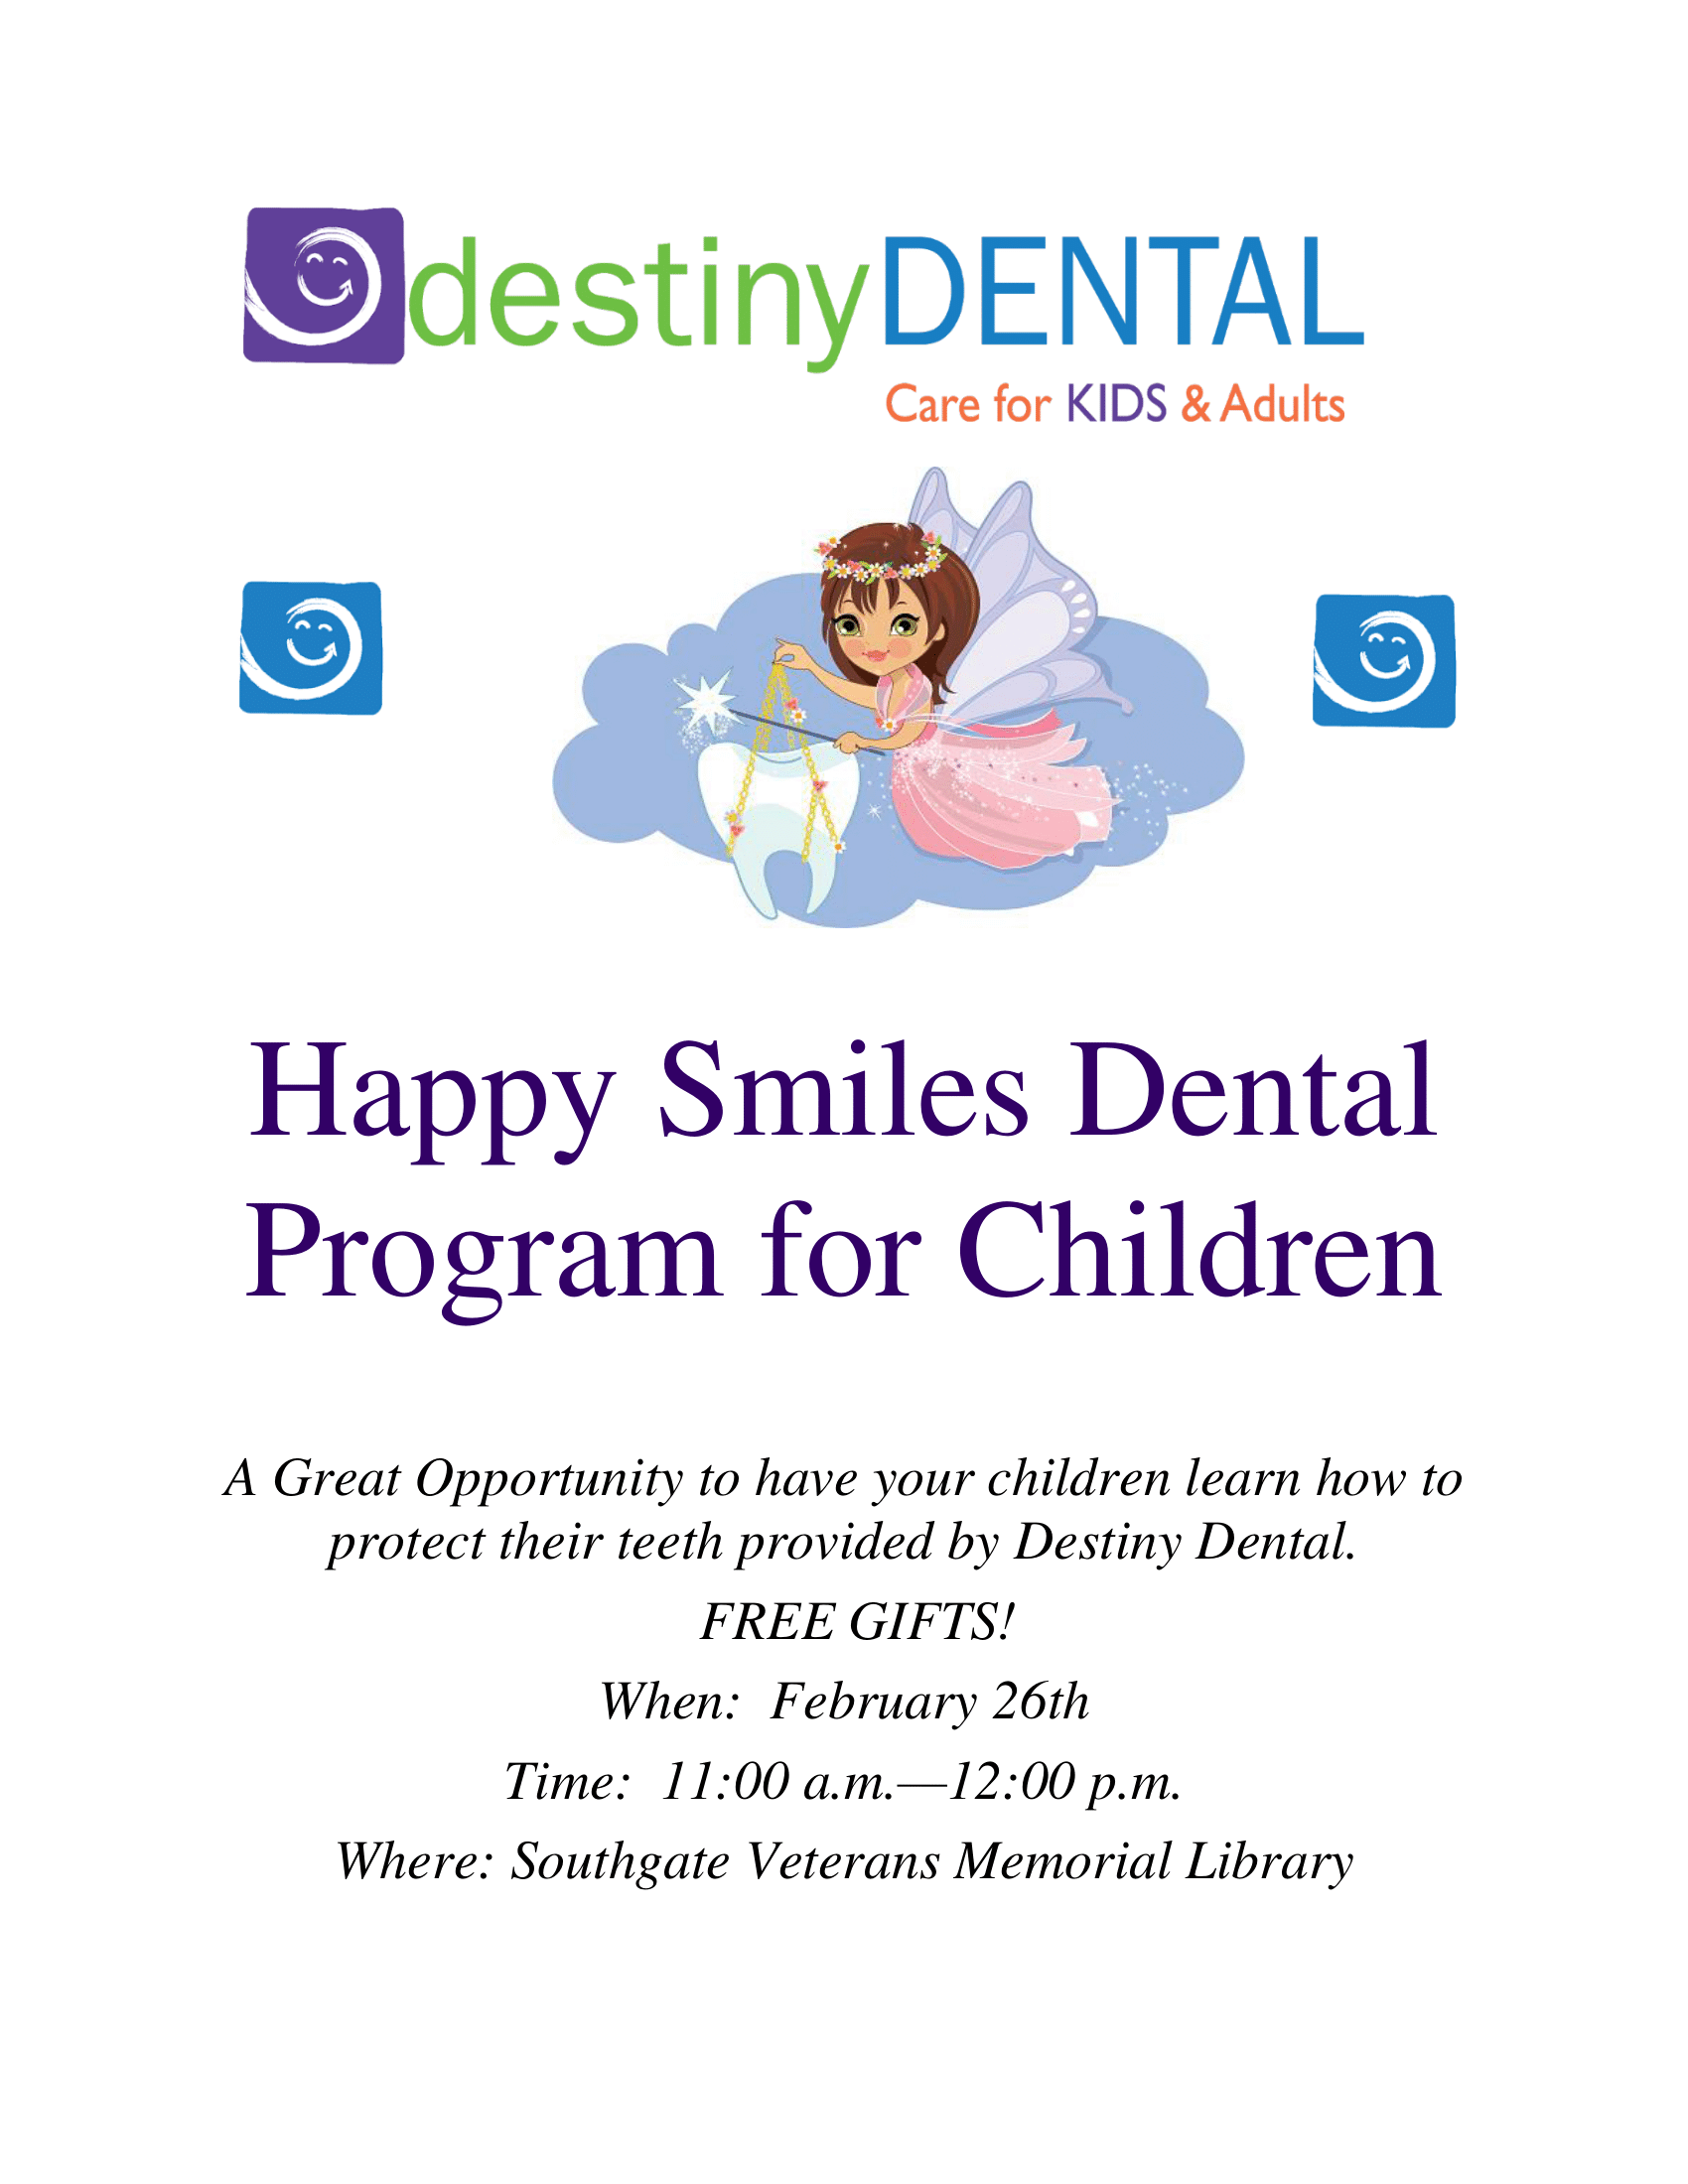 A Tooth Fairy with a molar and wand, with the text: 'destinyDENTAL Care for KIDS and Adults. Happy Smiles Dental Program for Children. A great opportunity to have your children learn how to protect their teeth provided by Destiny Dental. FREE GIFTS! When: February 26th. Time: 11am - 12pm. Where: Southgate Veterans Memorial Library'